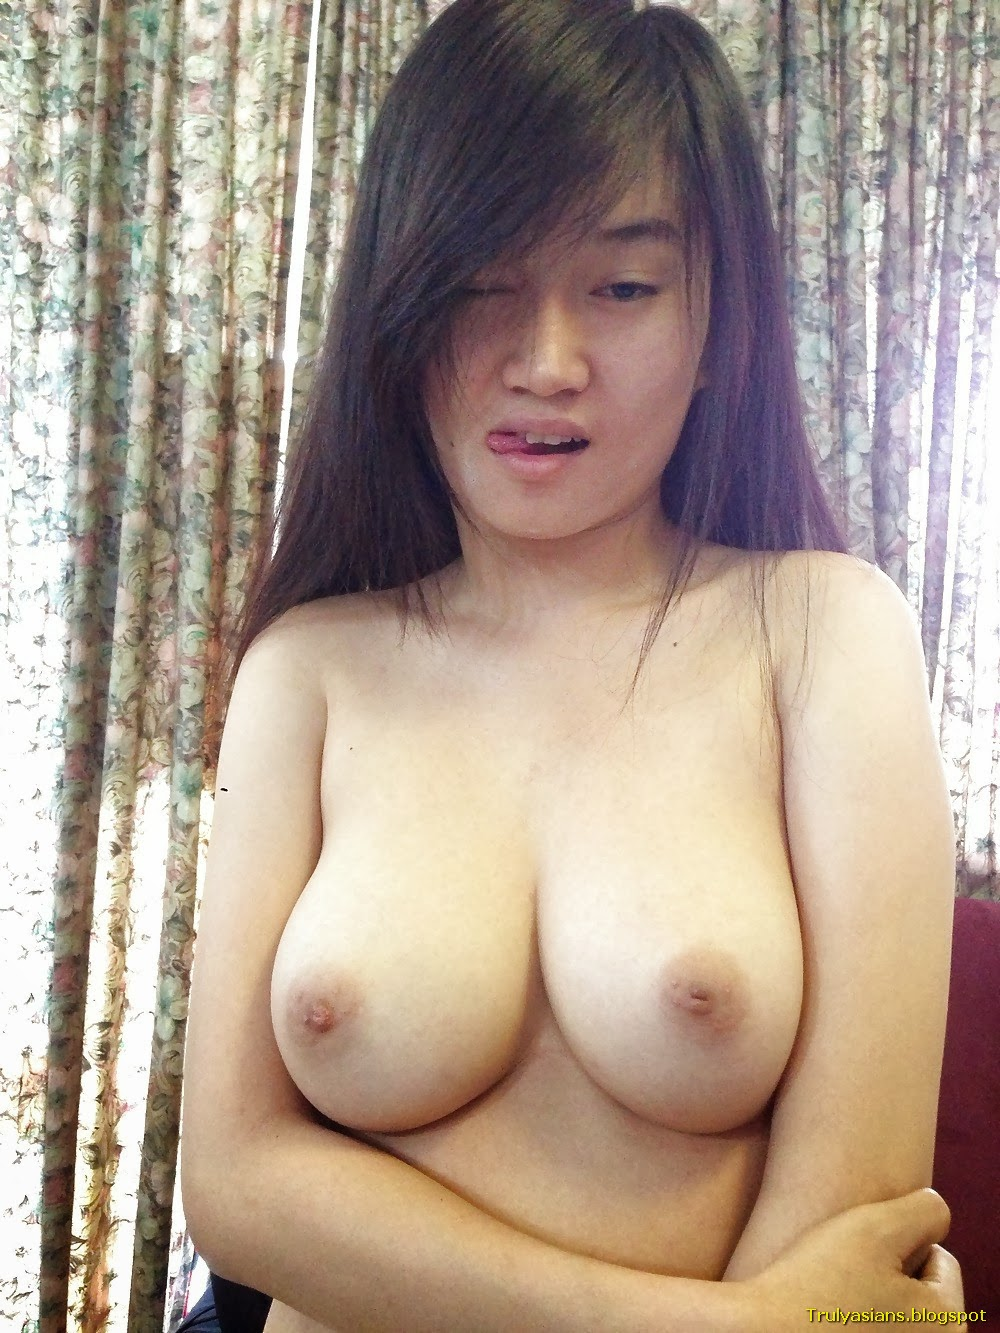 naked sexy picture taiwan girl